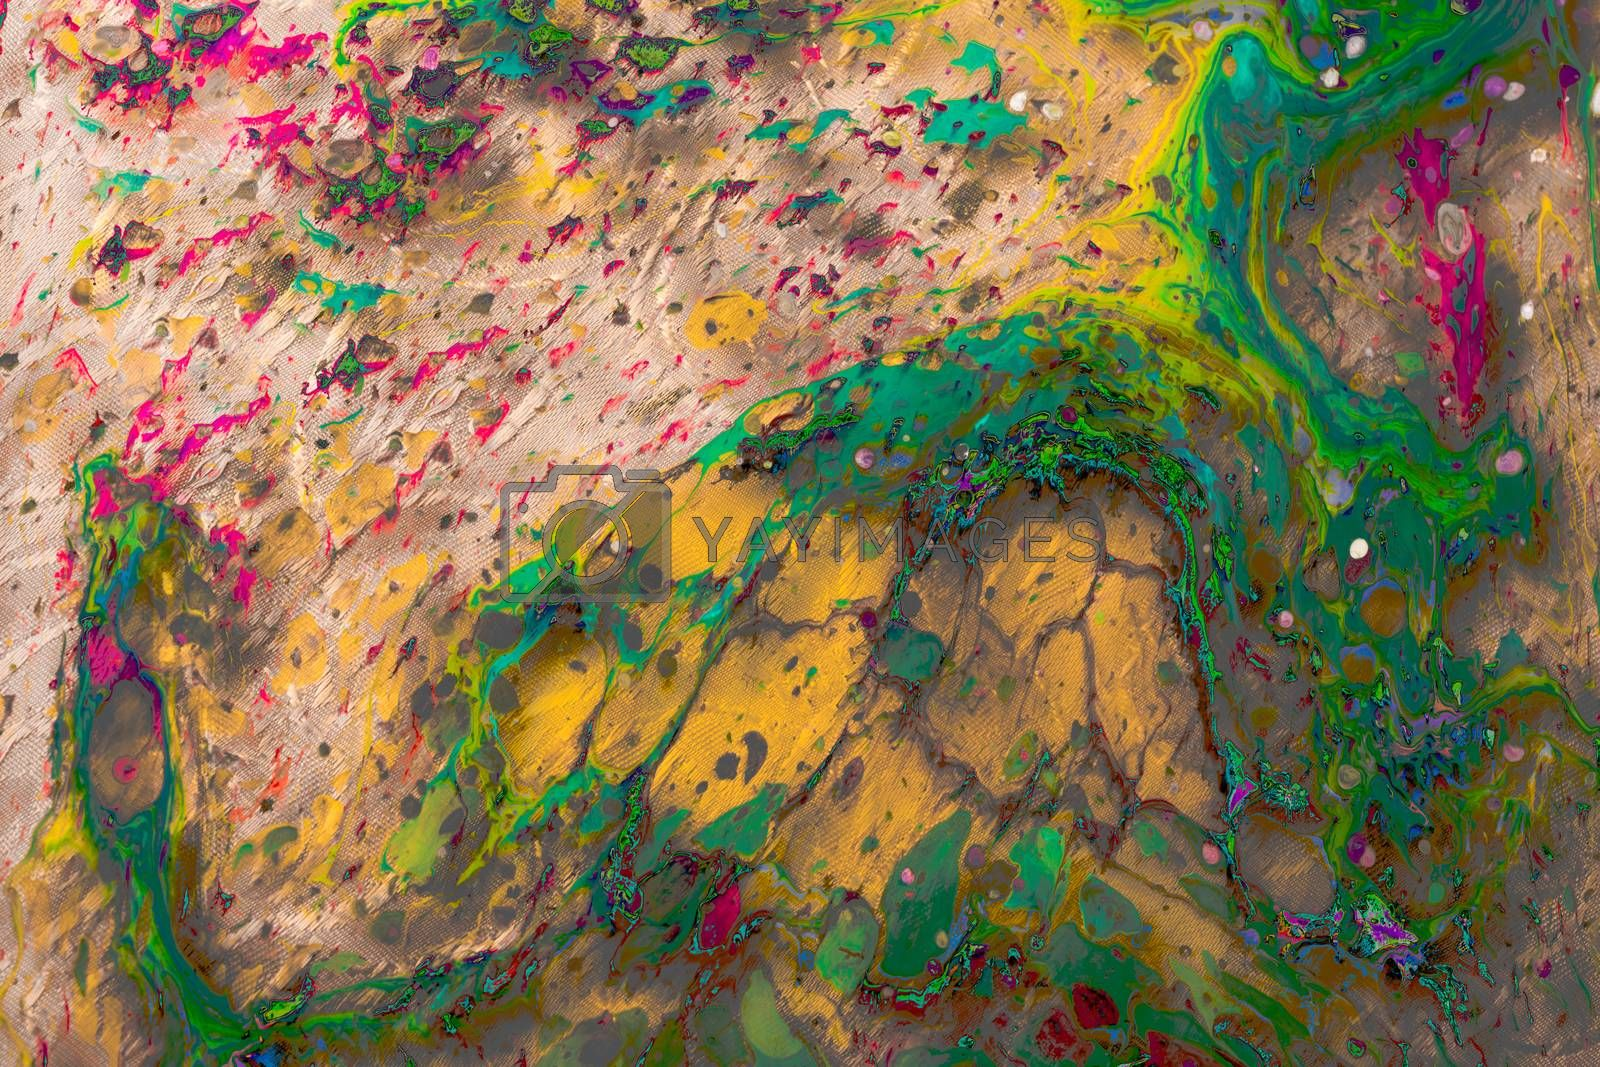 Abstract grunge art background texture with colorful paint splas by berkay